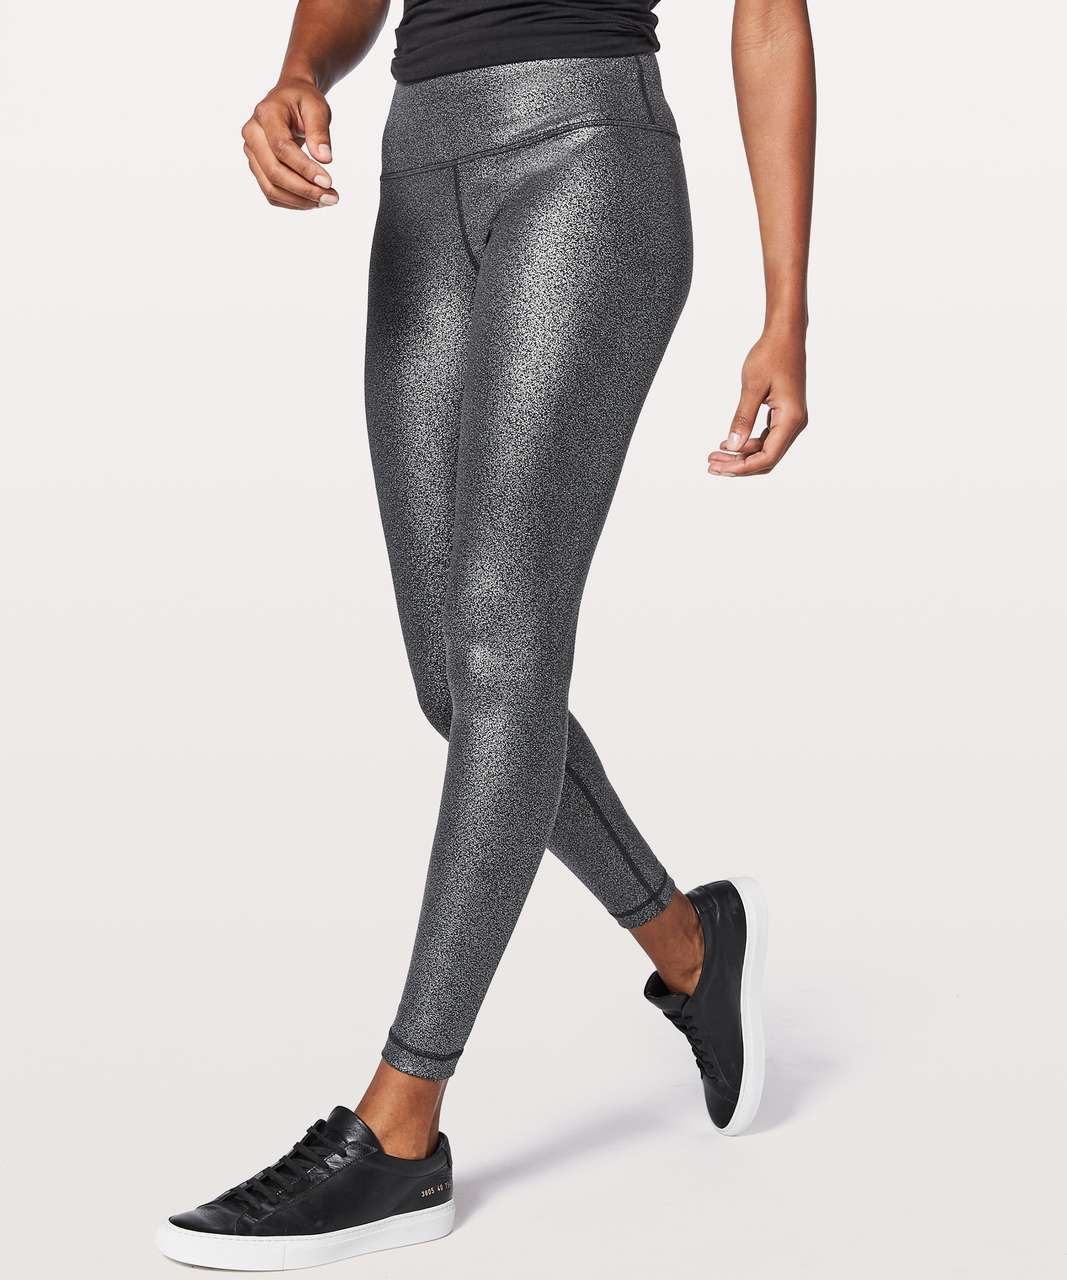 "Lululemon Wunder Under Hi-Rise Tight 28"" - Luminosity Foil Print Black Silver"